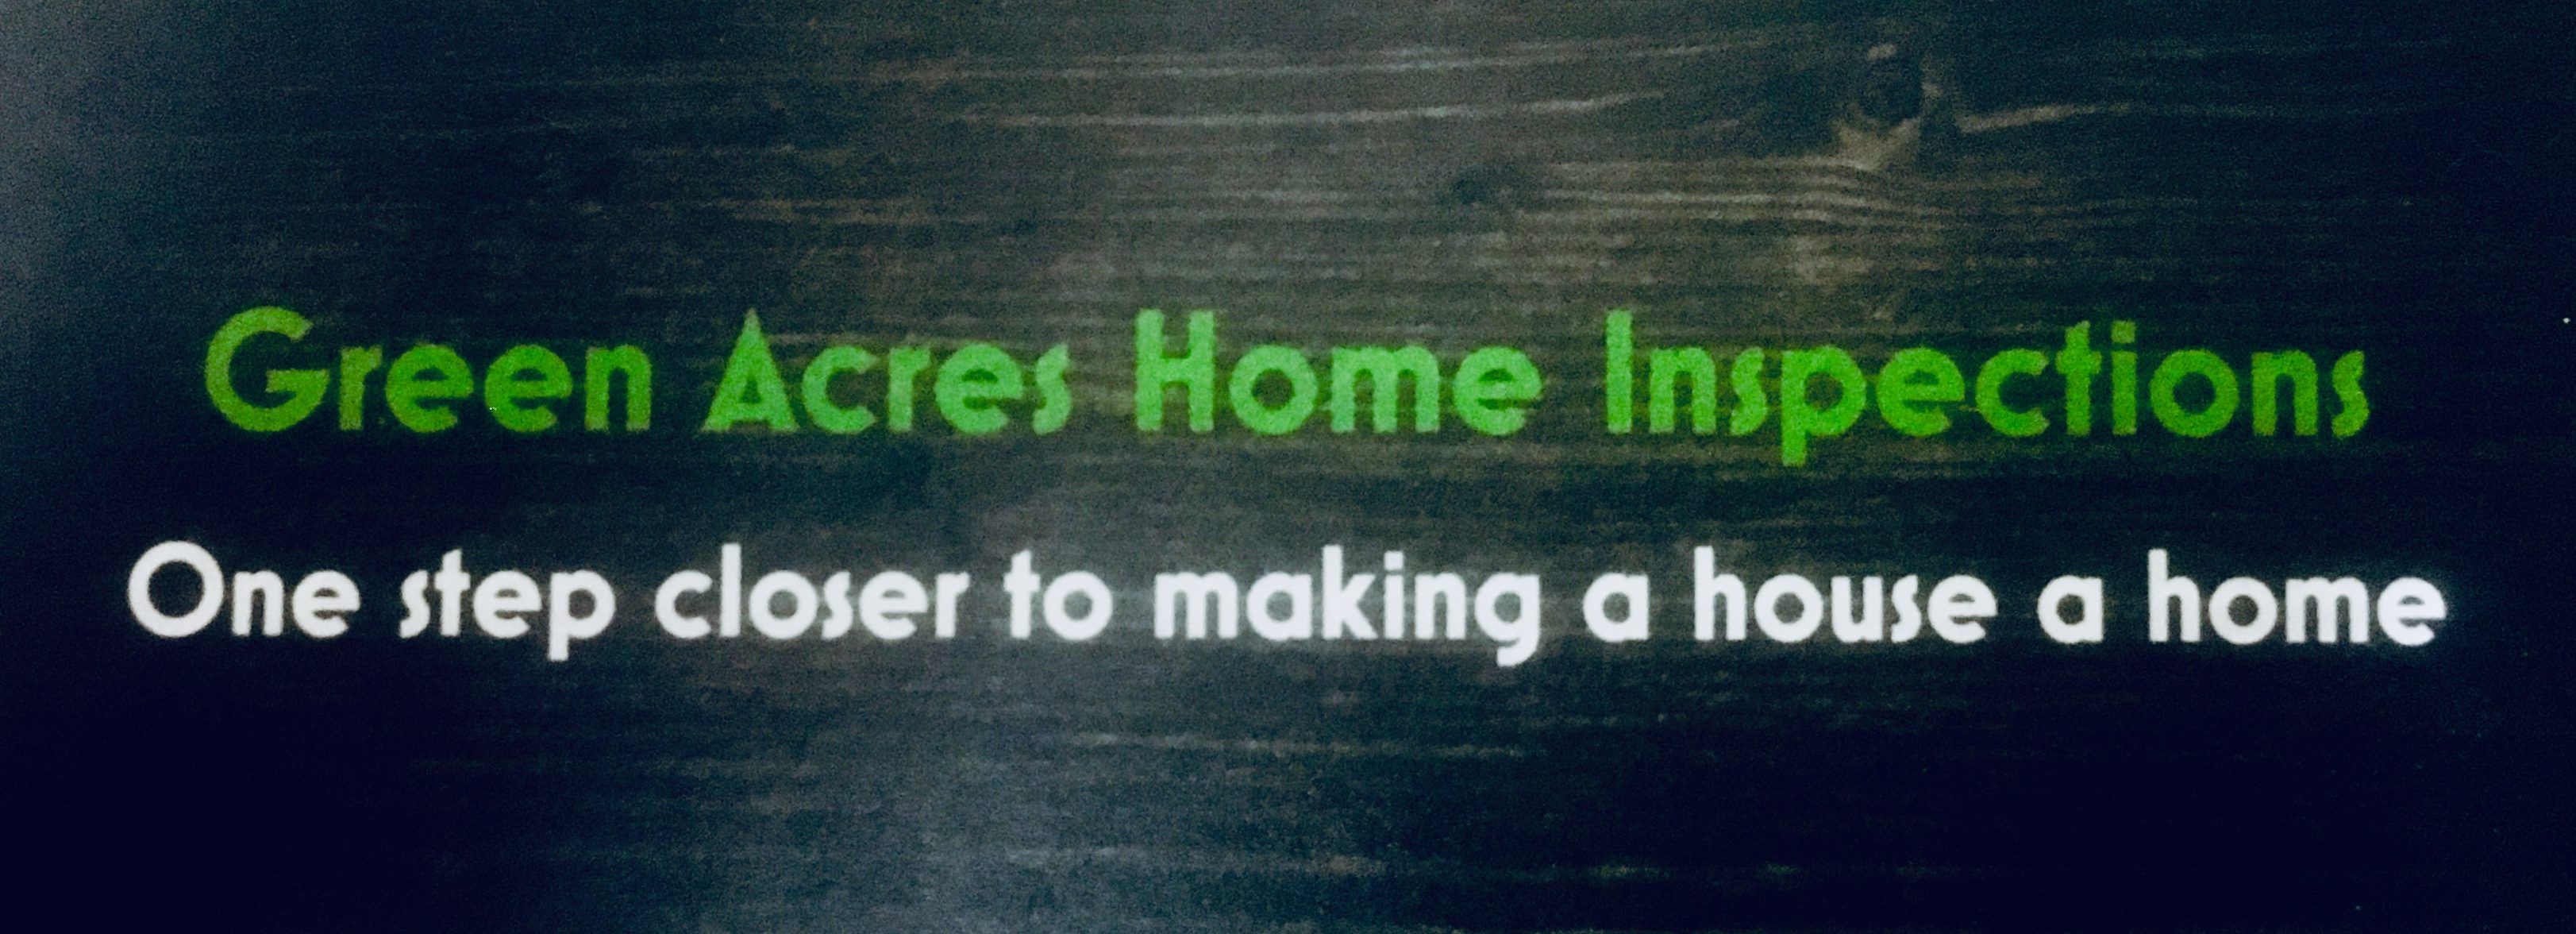 Home Inspections In Central Missouri & Lake of the Ozarks